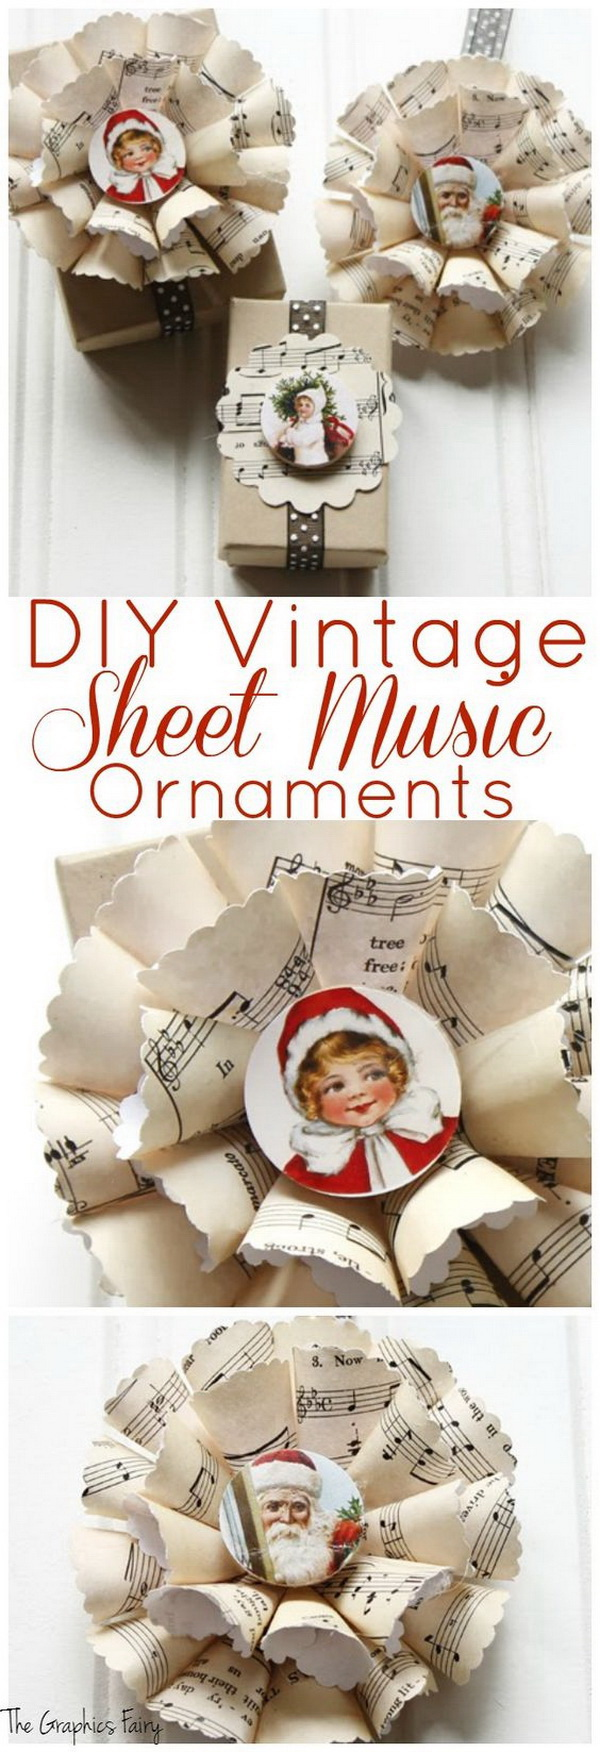 Sheet Music Christmas Ornaments. Great Christmas ornaments made with old sheet music sheets and embellishments! These paper ornaments would be great on the top of a gift as decoration!